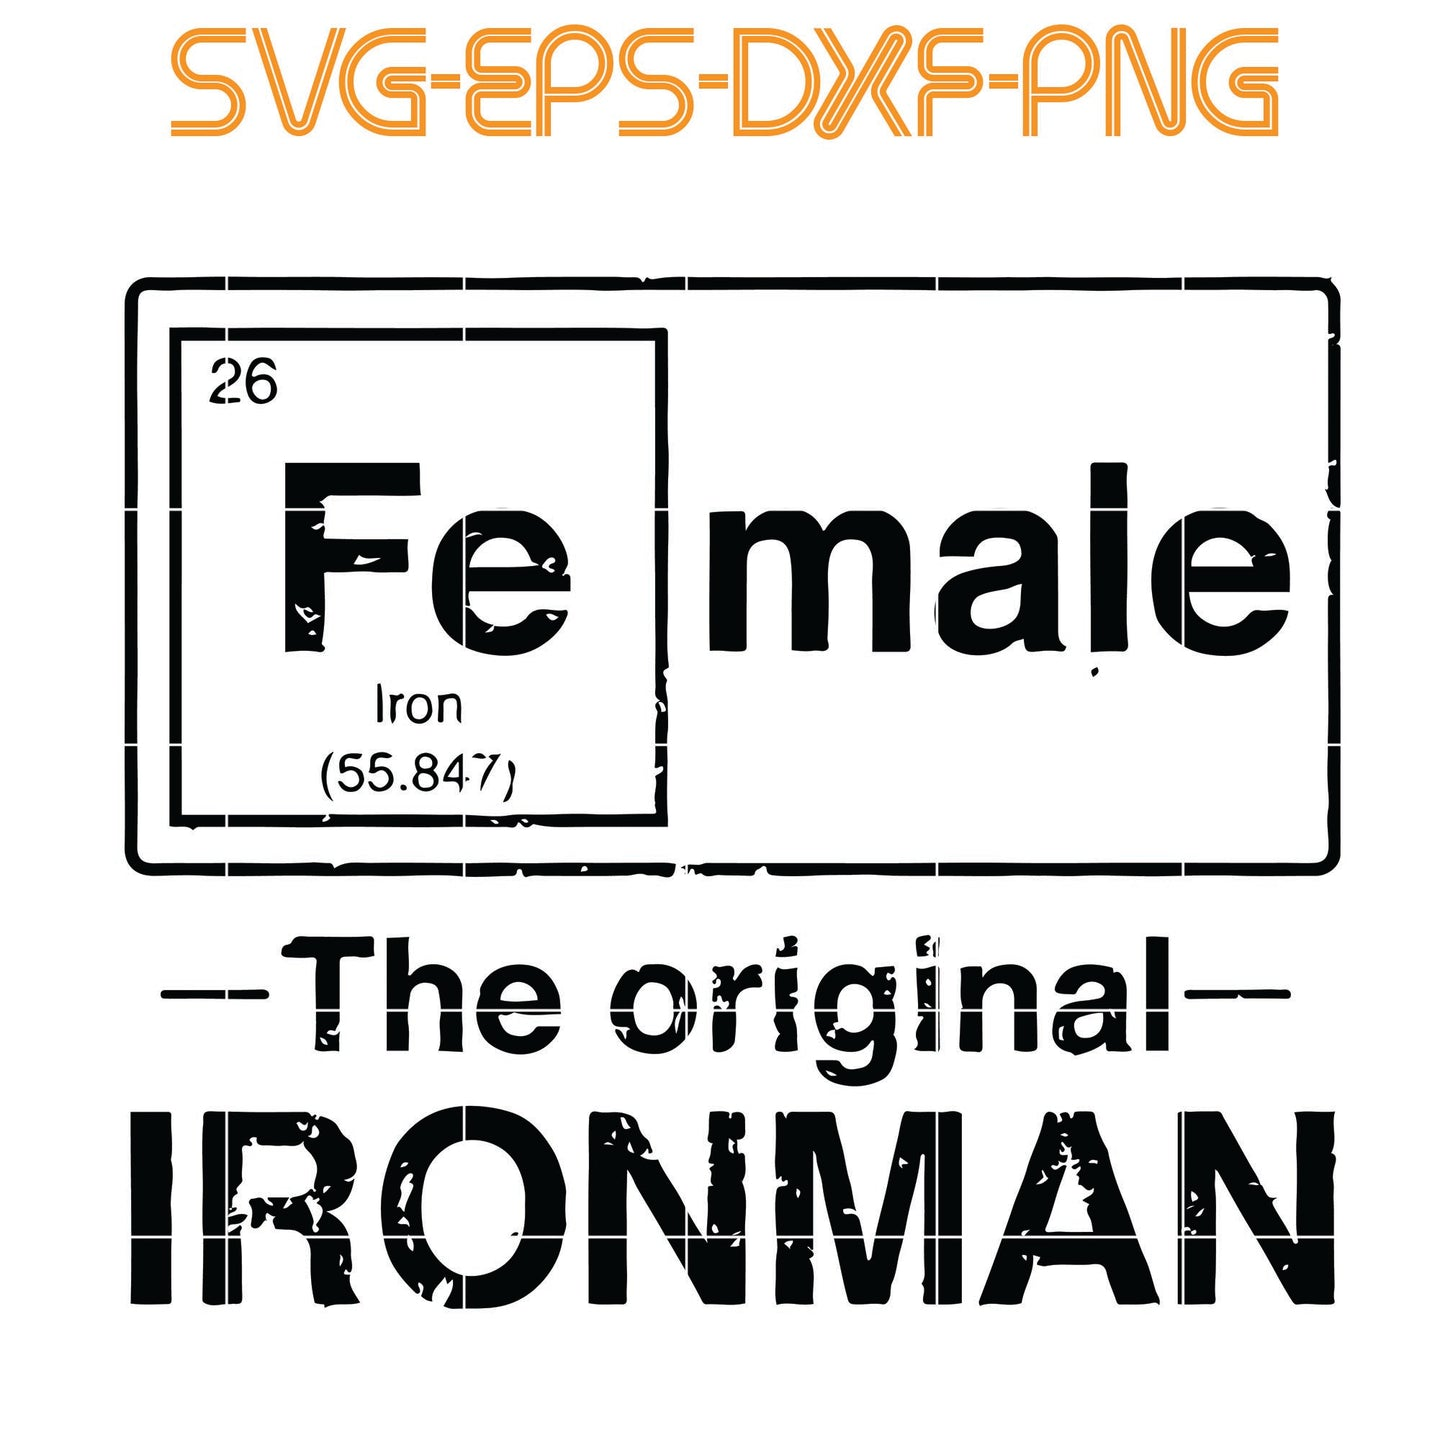 Iron , Female The Original Ironman , Quotes, PNG, EPS, DXF, Digital Download